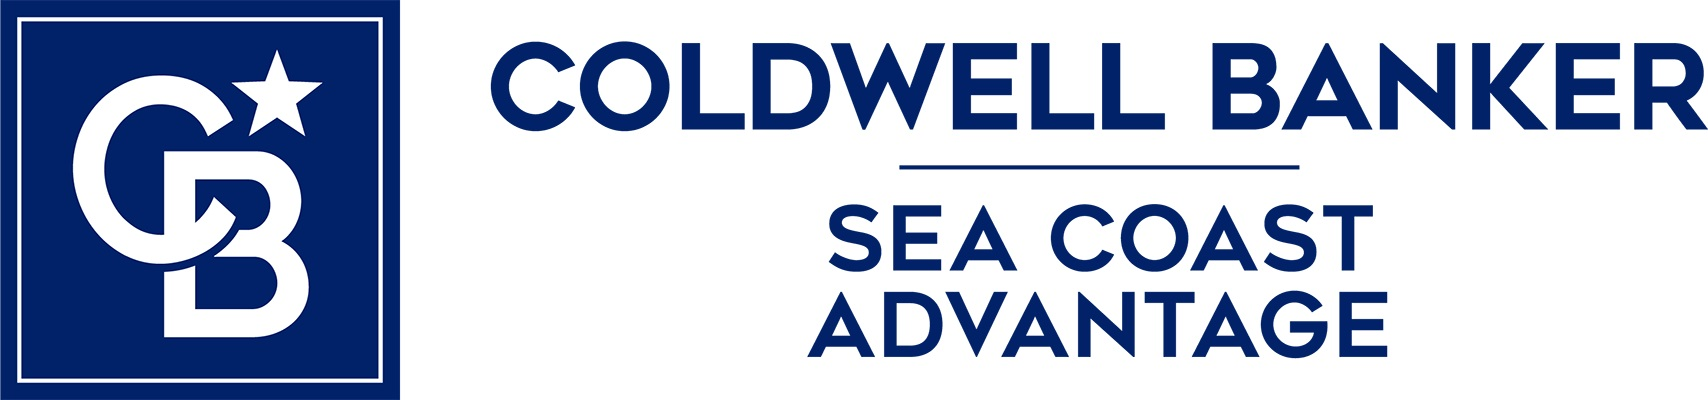 Cori McQueen - Coldwell Banker Sea Coast Advantage Realty Logo